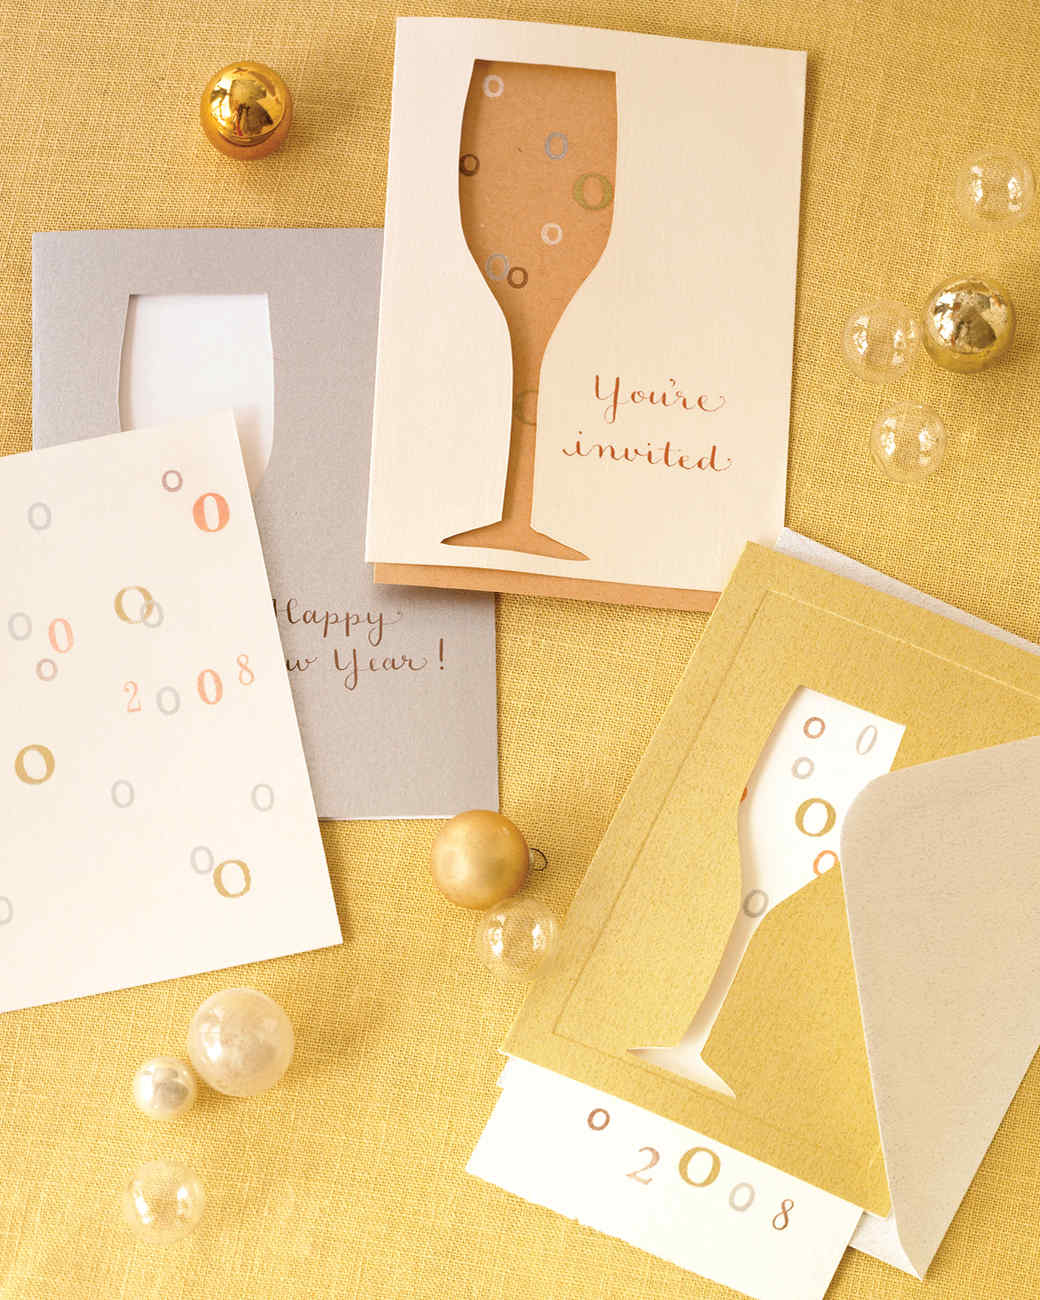 Clip Art and Templates for New Year s   Martha Stewart Invitations That Pop